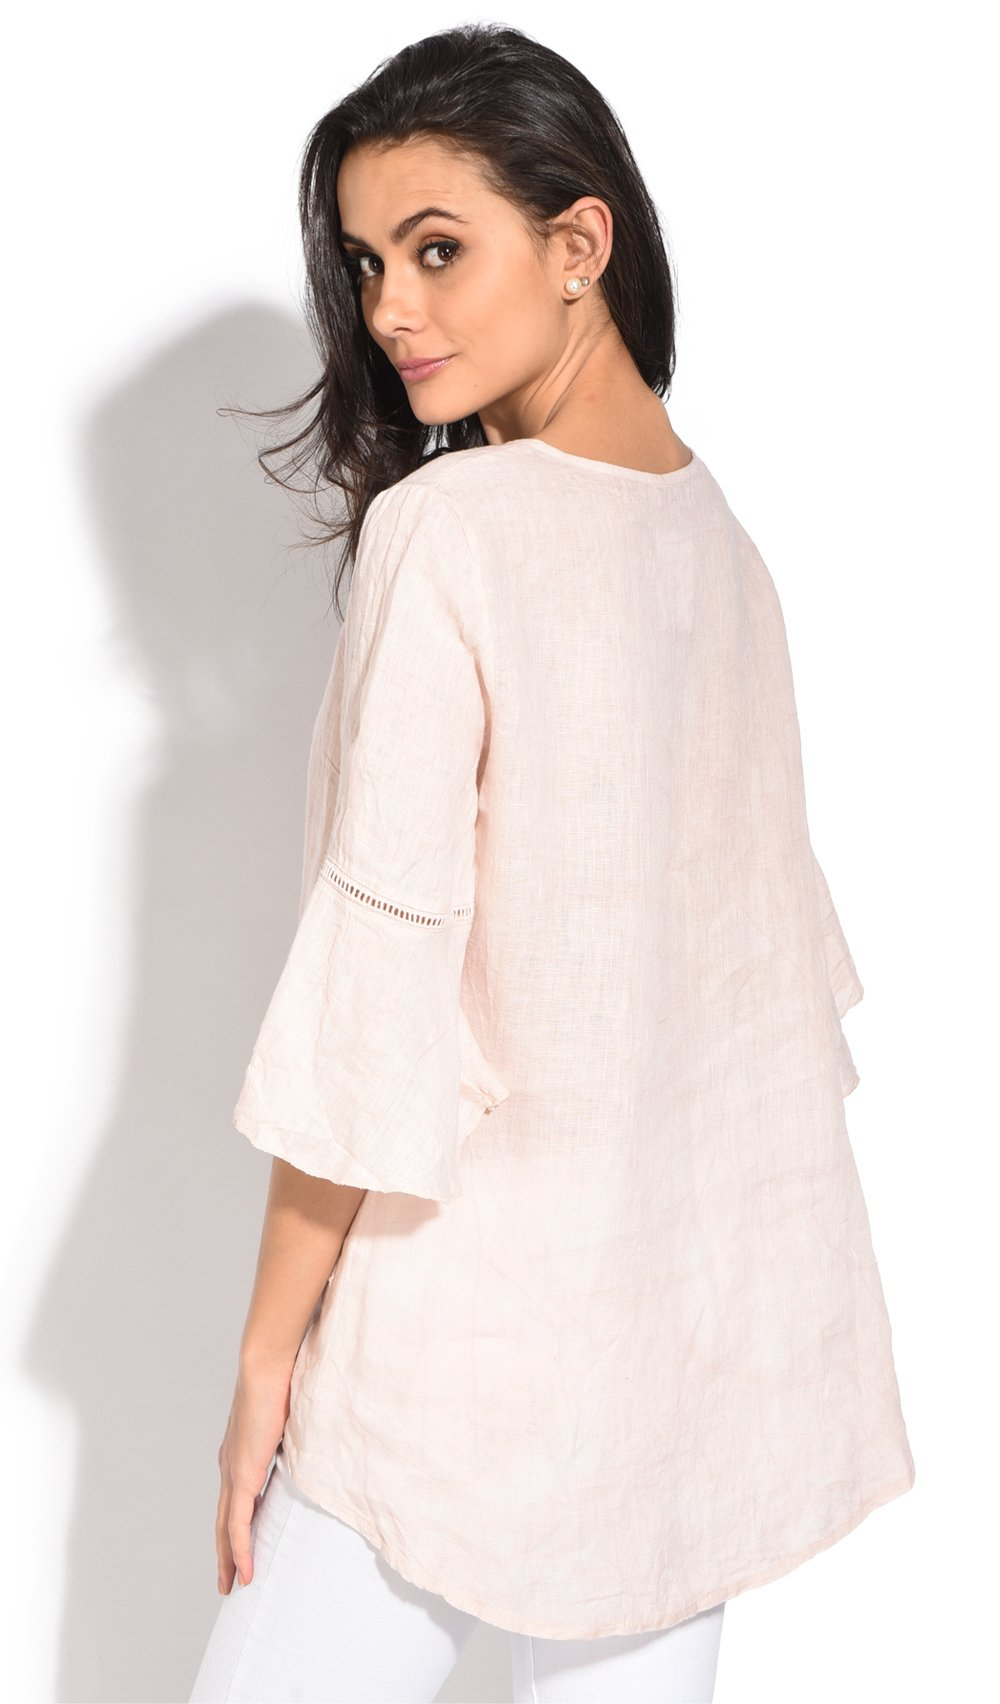 ROUND COLLAR TUNIC WITH LACE INSERT AND RUFFLED SLEEVES